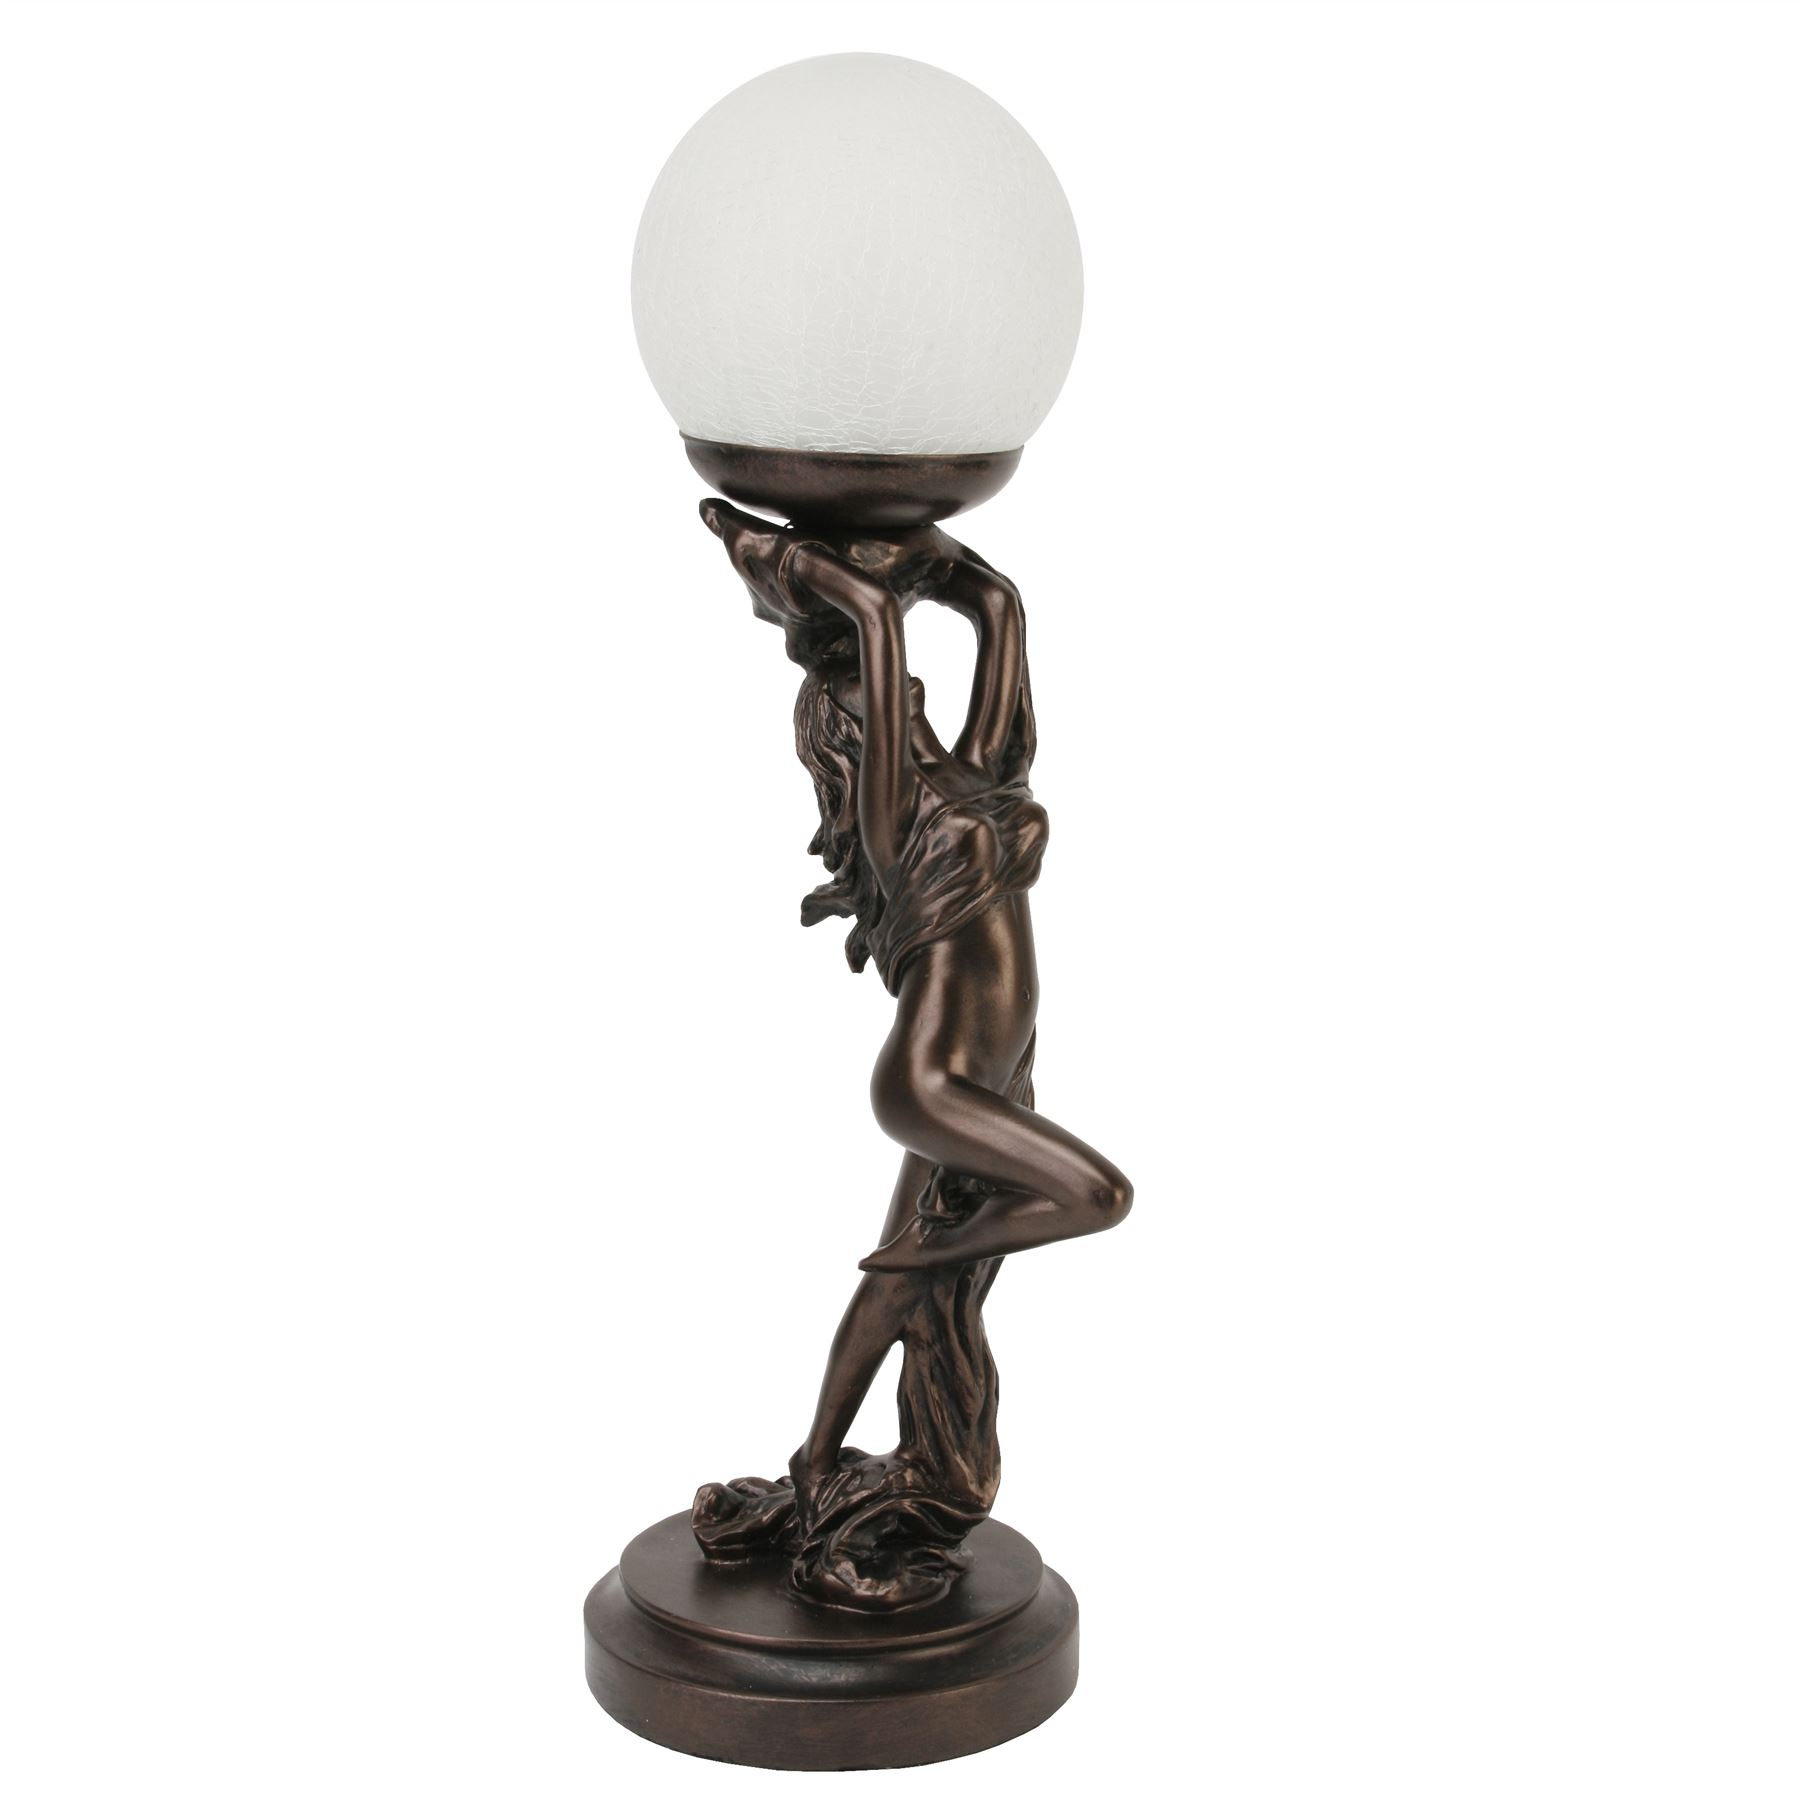 Juliana Gifts Lamp - Bronze Art Deco Lady Holding Orb